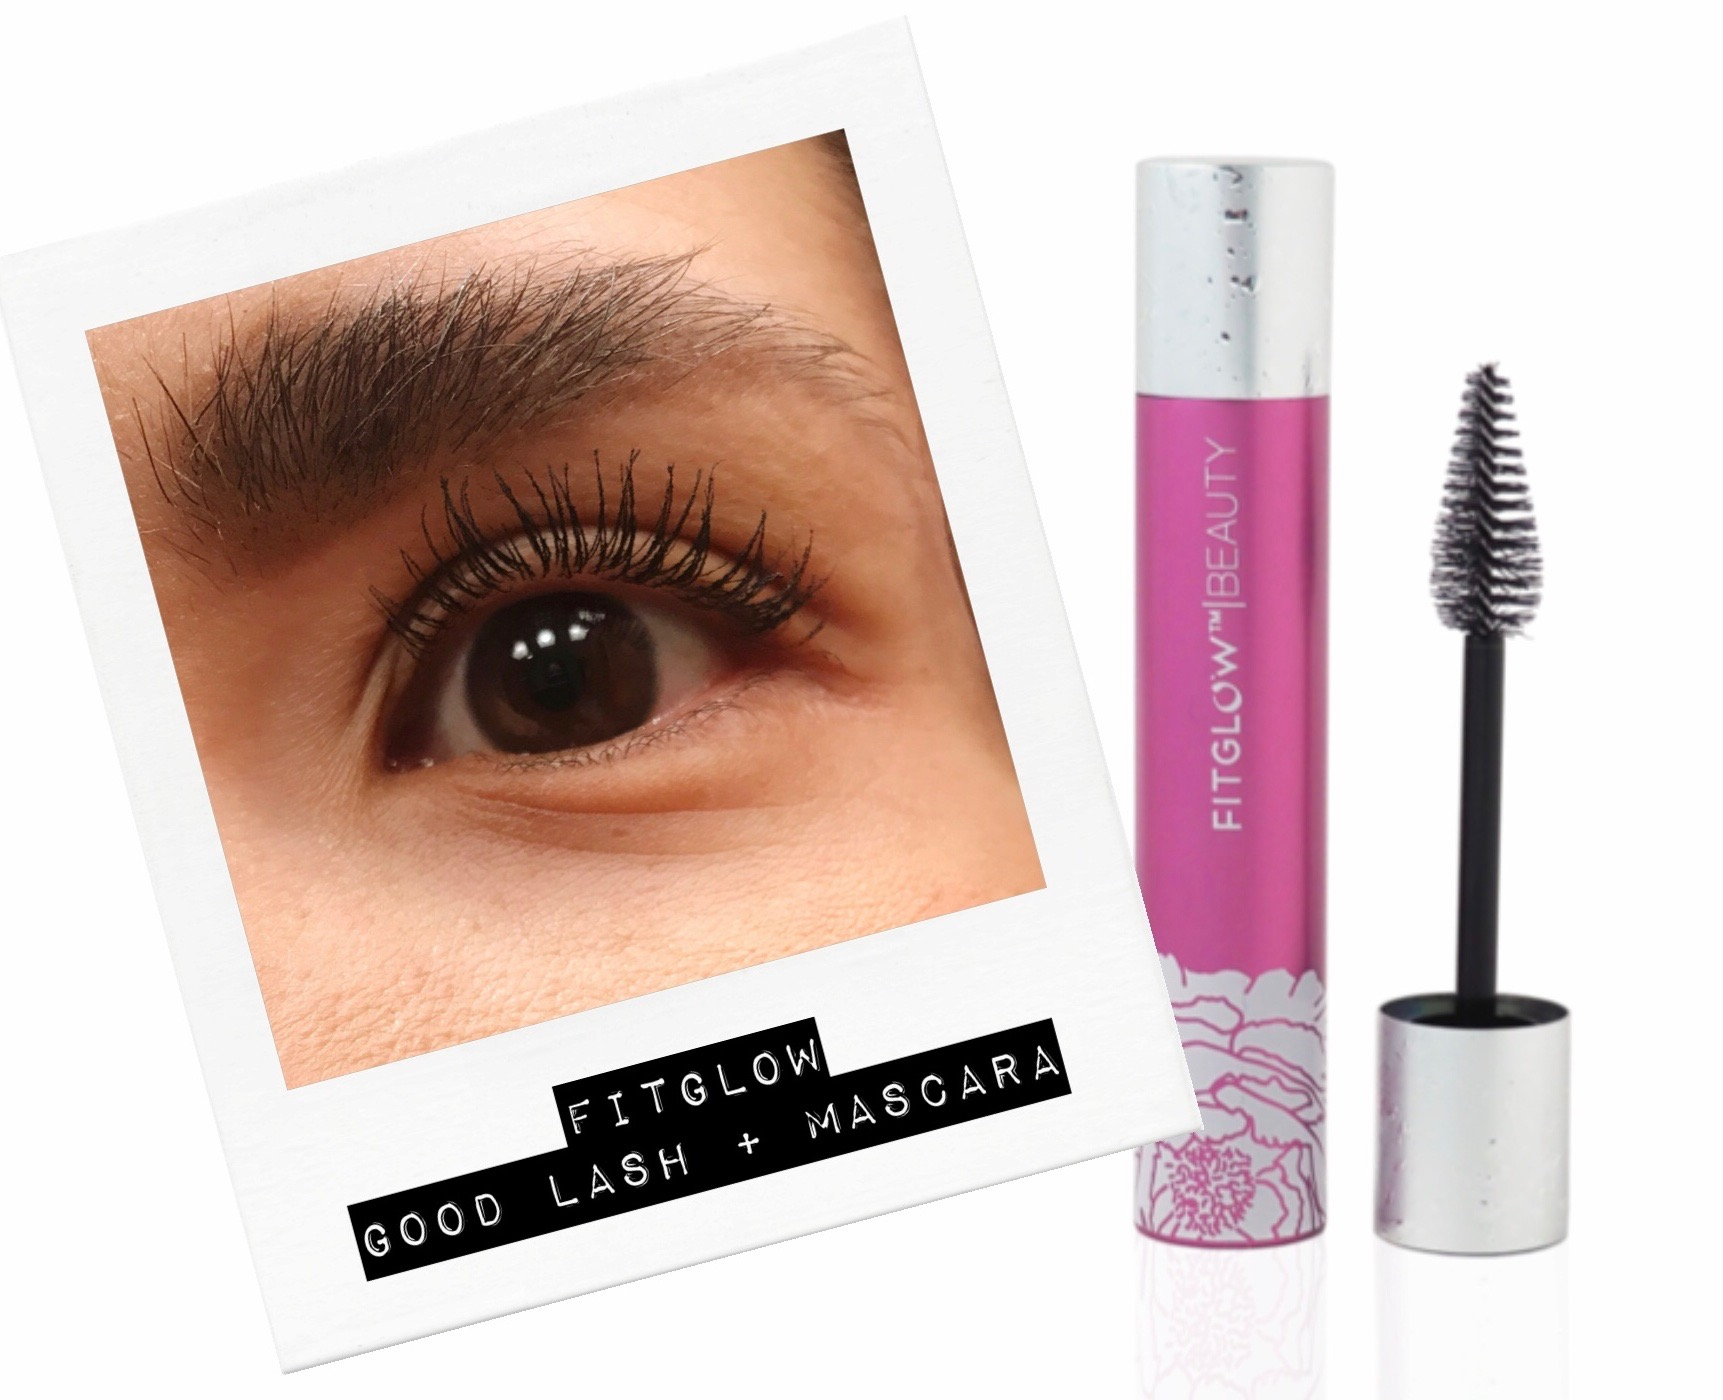 Green Beauty Mascara Guide - FitGlow Good Lash + Mascara | janny: organically.